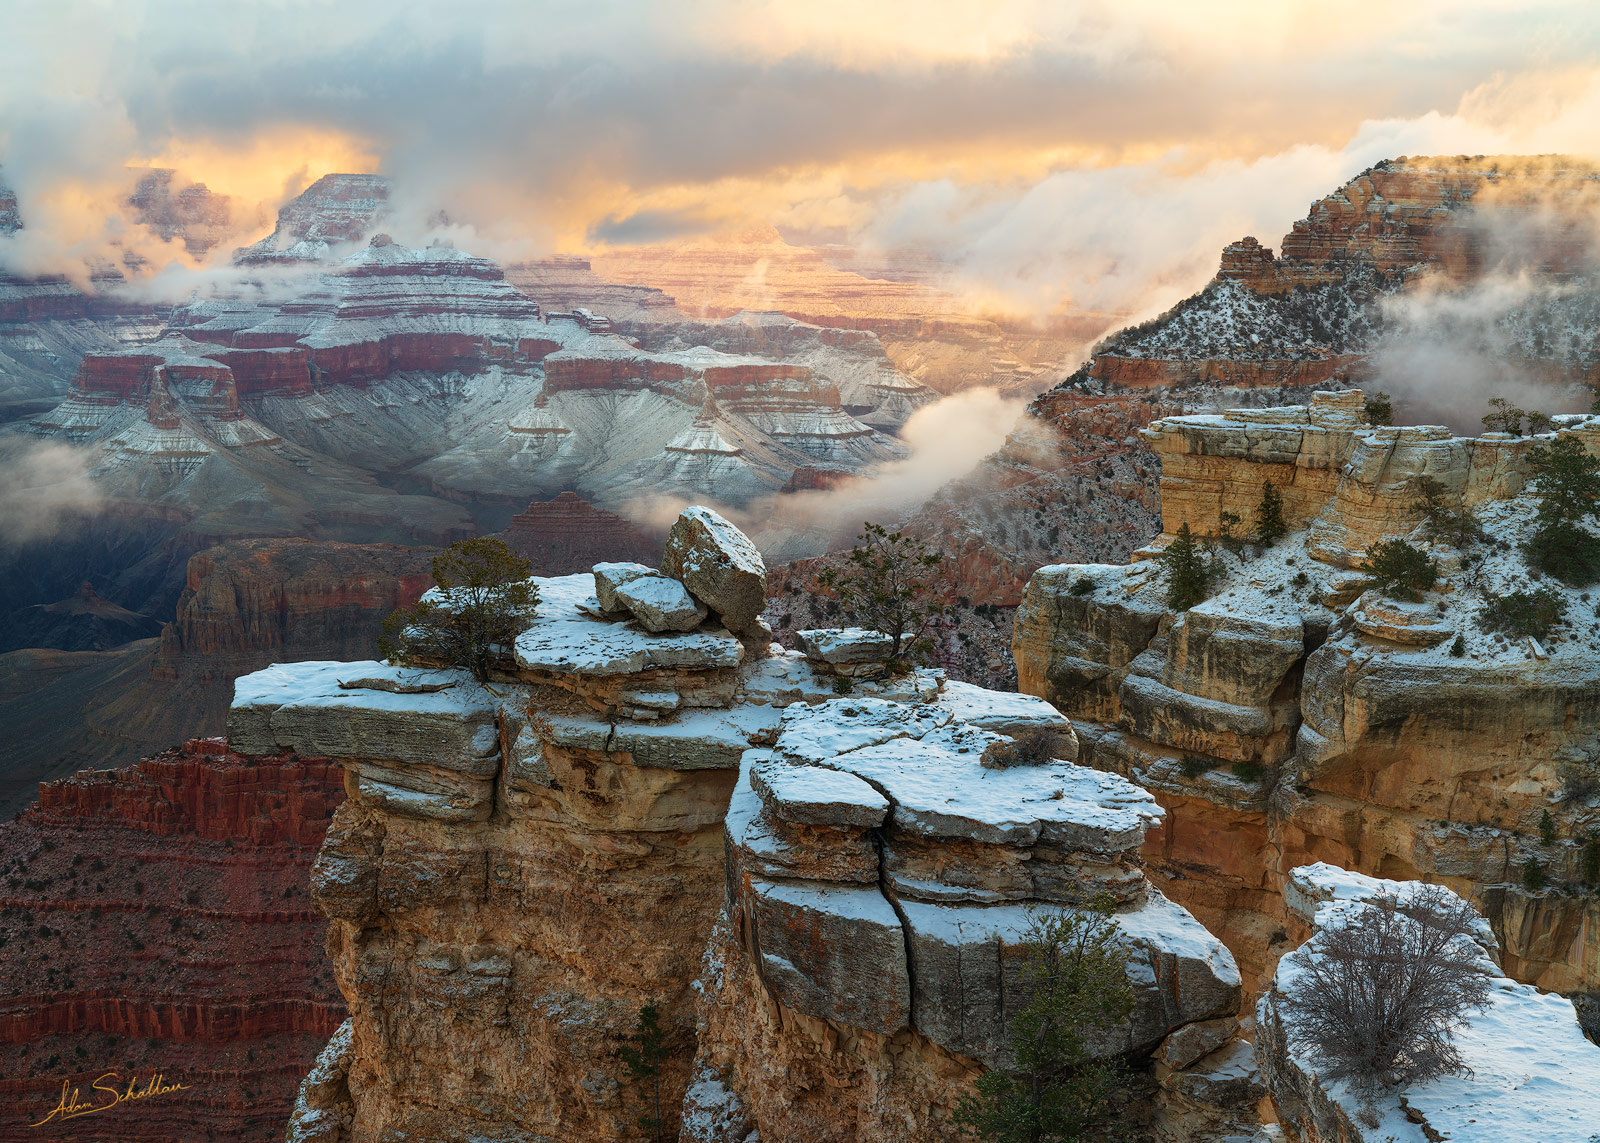 AZ, American Southwest, Arizona, Colorado Plateau, Grand Canyon, Grand Canyon National Park, Mather Point, National Park, Snow, Snow at the Grand Canyon, South Rim, South Rim of the Grand Canyon, Sout, photo